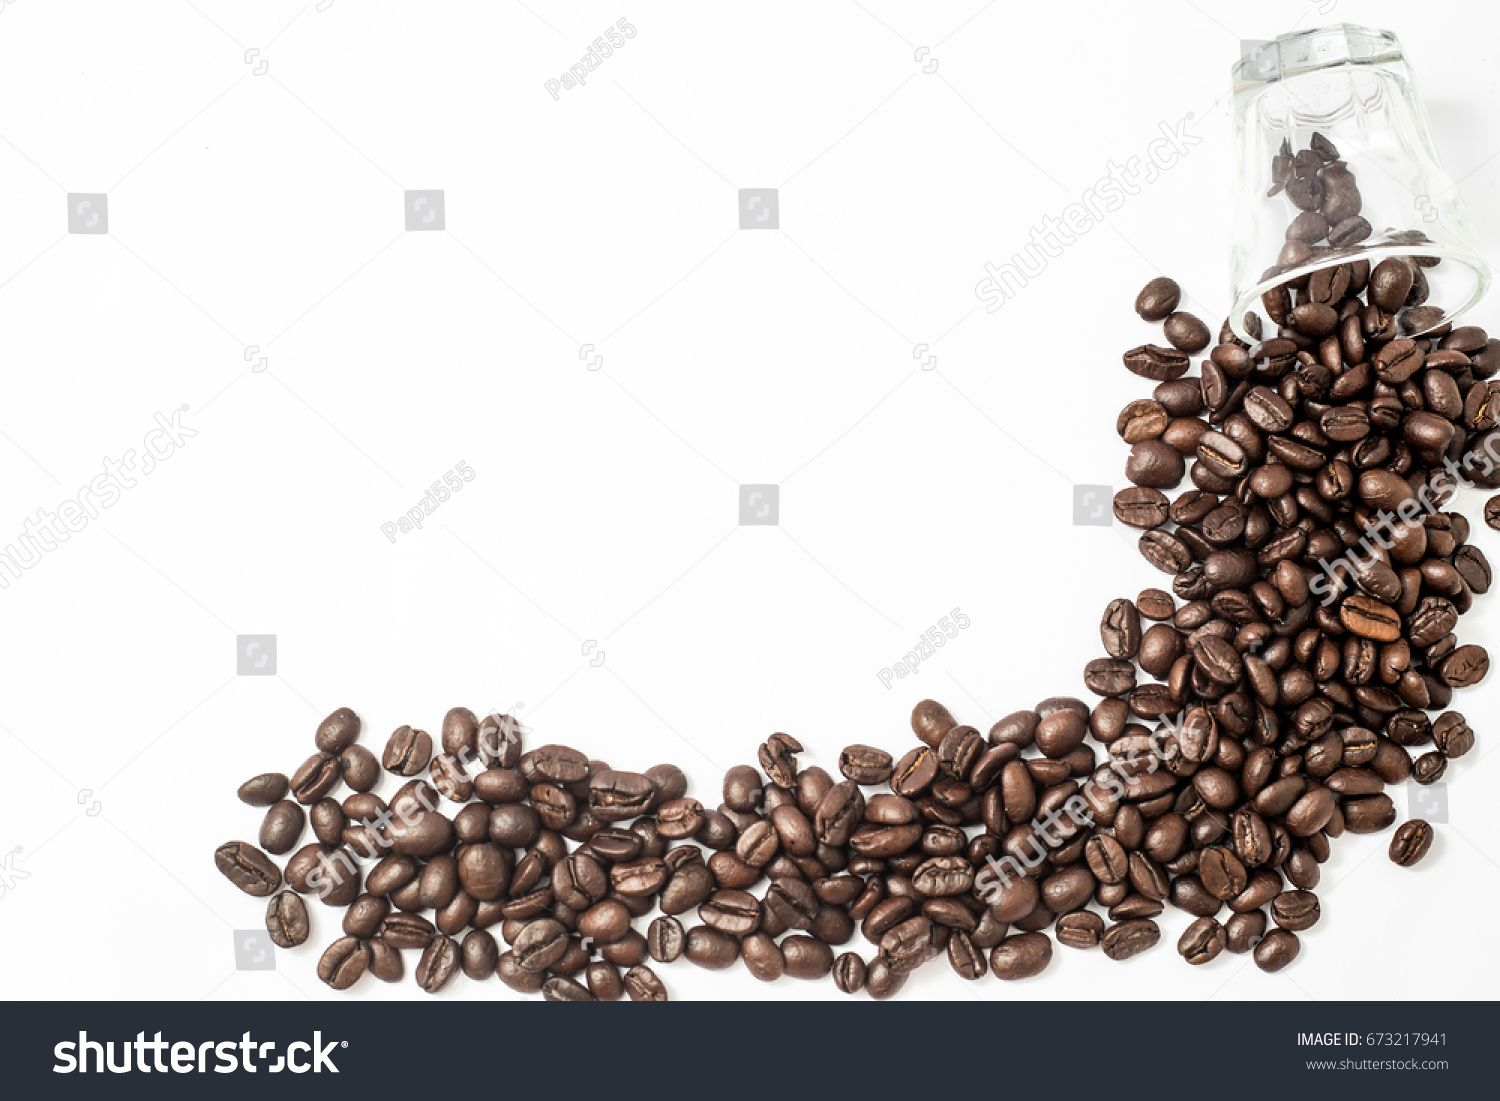 Roasted Coffee Beans Cup Full Isolated On White Background With Space For Caption Or Text Ad Sponso In 2020 Roasted Coffee Beans Coffee Beans Graphics Design Ideas